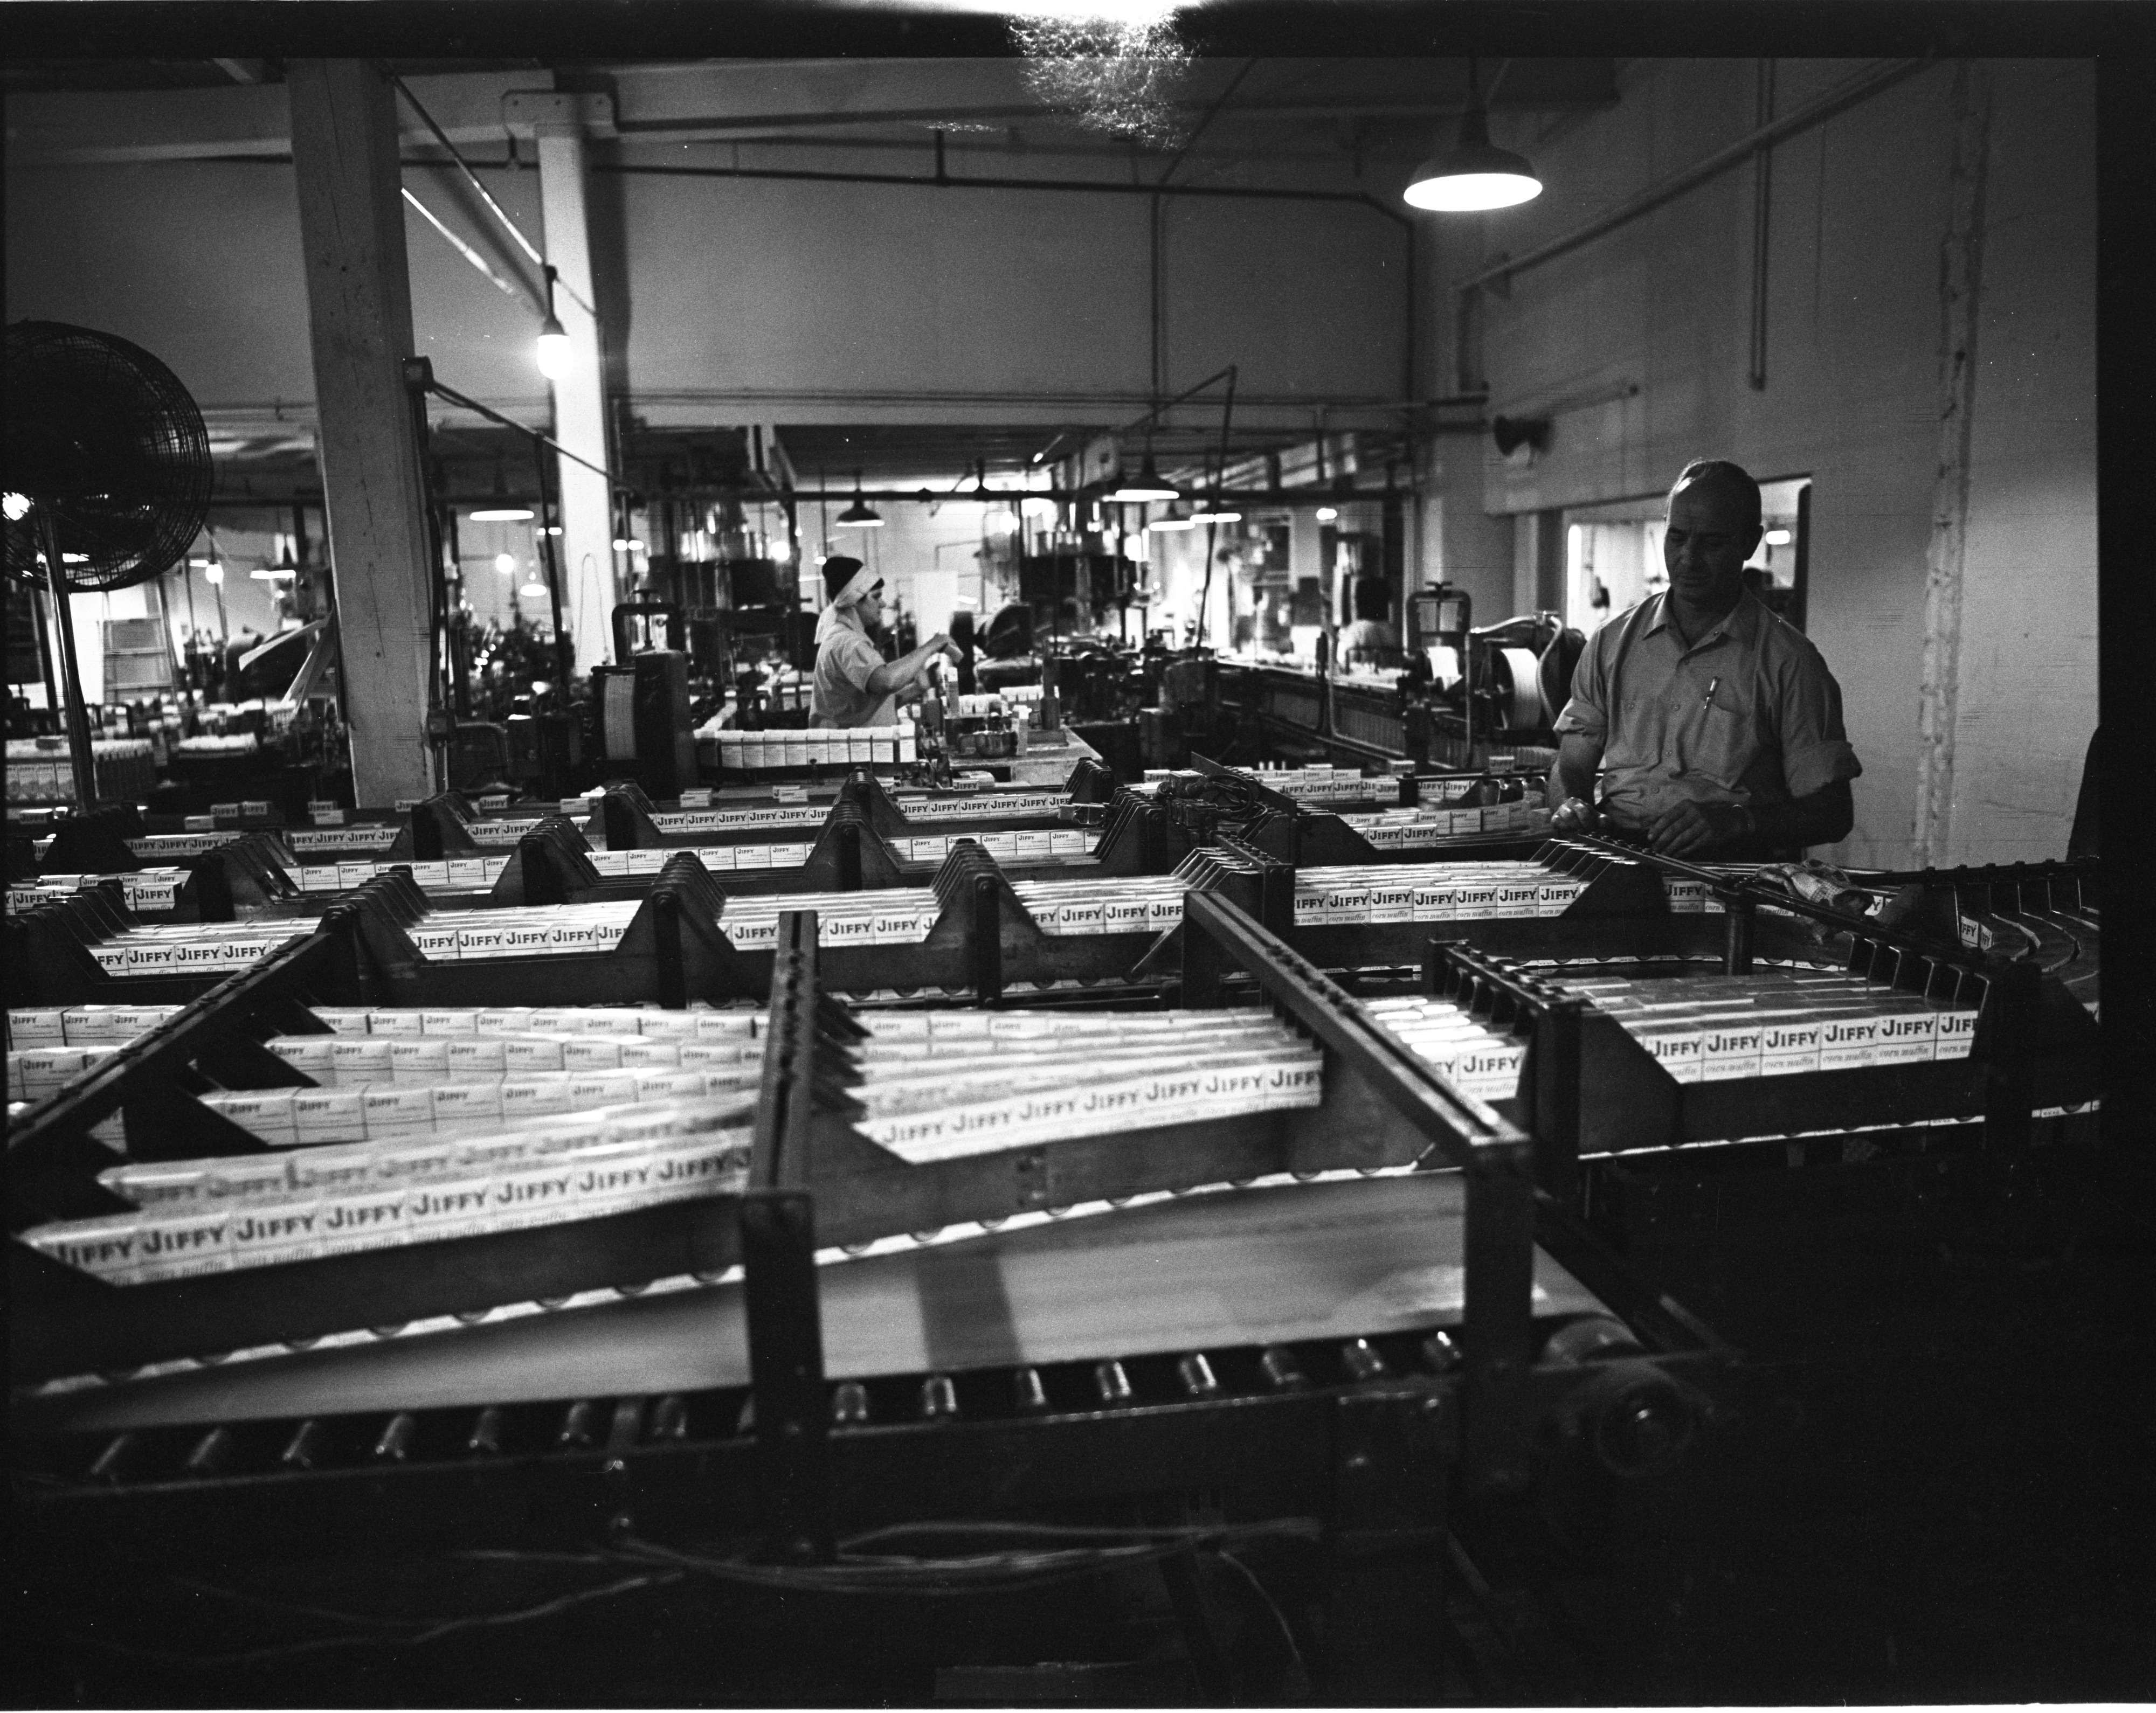 Boxes Of Jiffy Mix Travel The Assembly Lines At The Chelsea Milling Company's Packaging Plant, July 1973 image